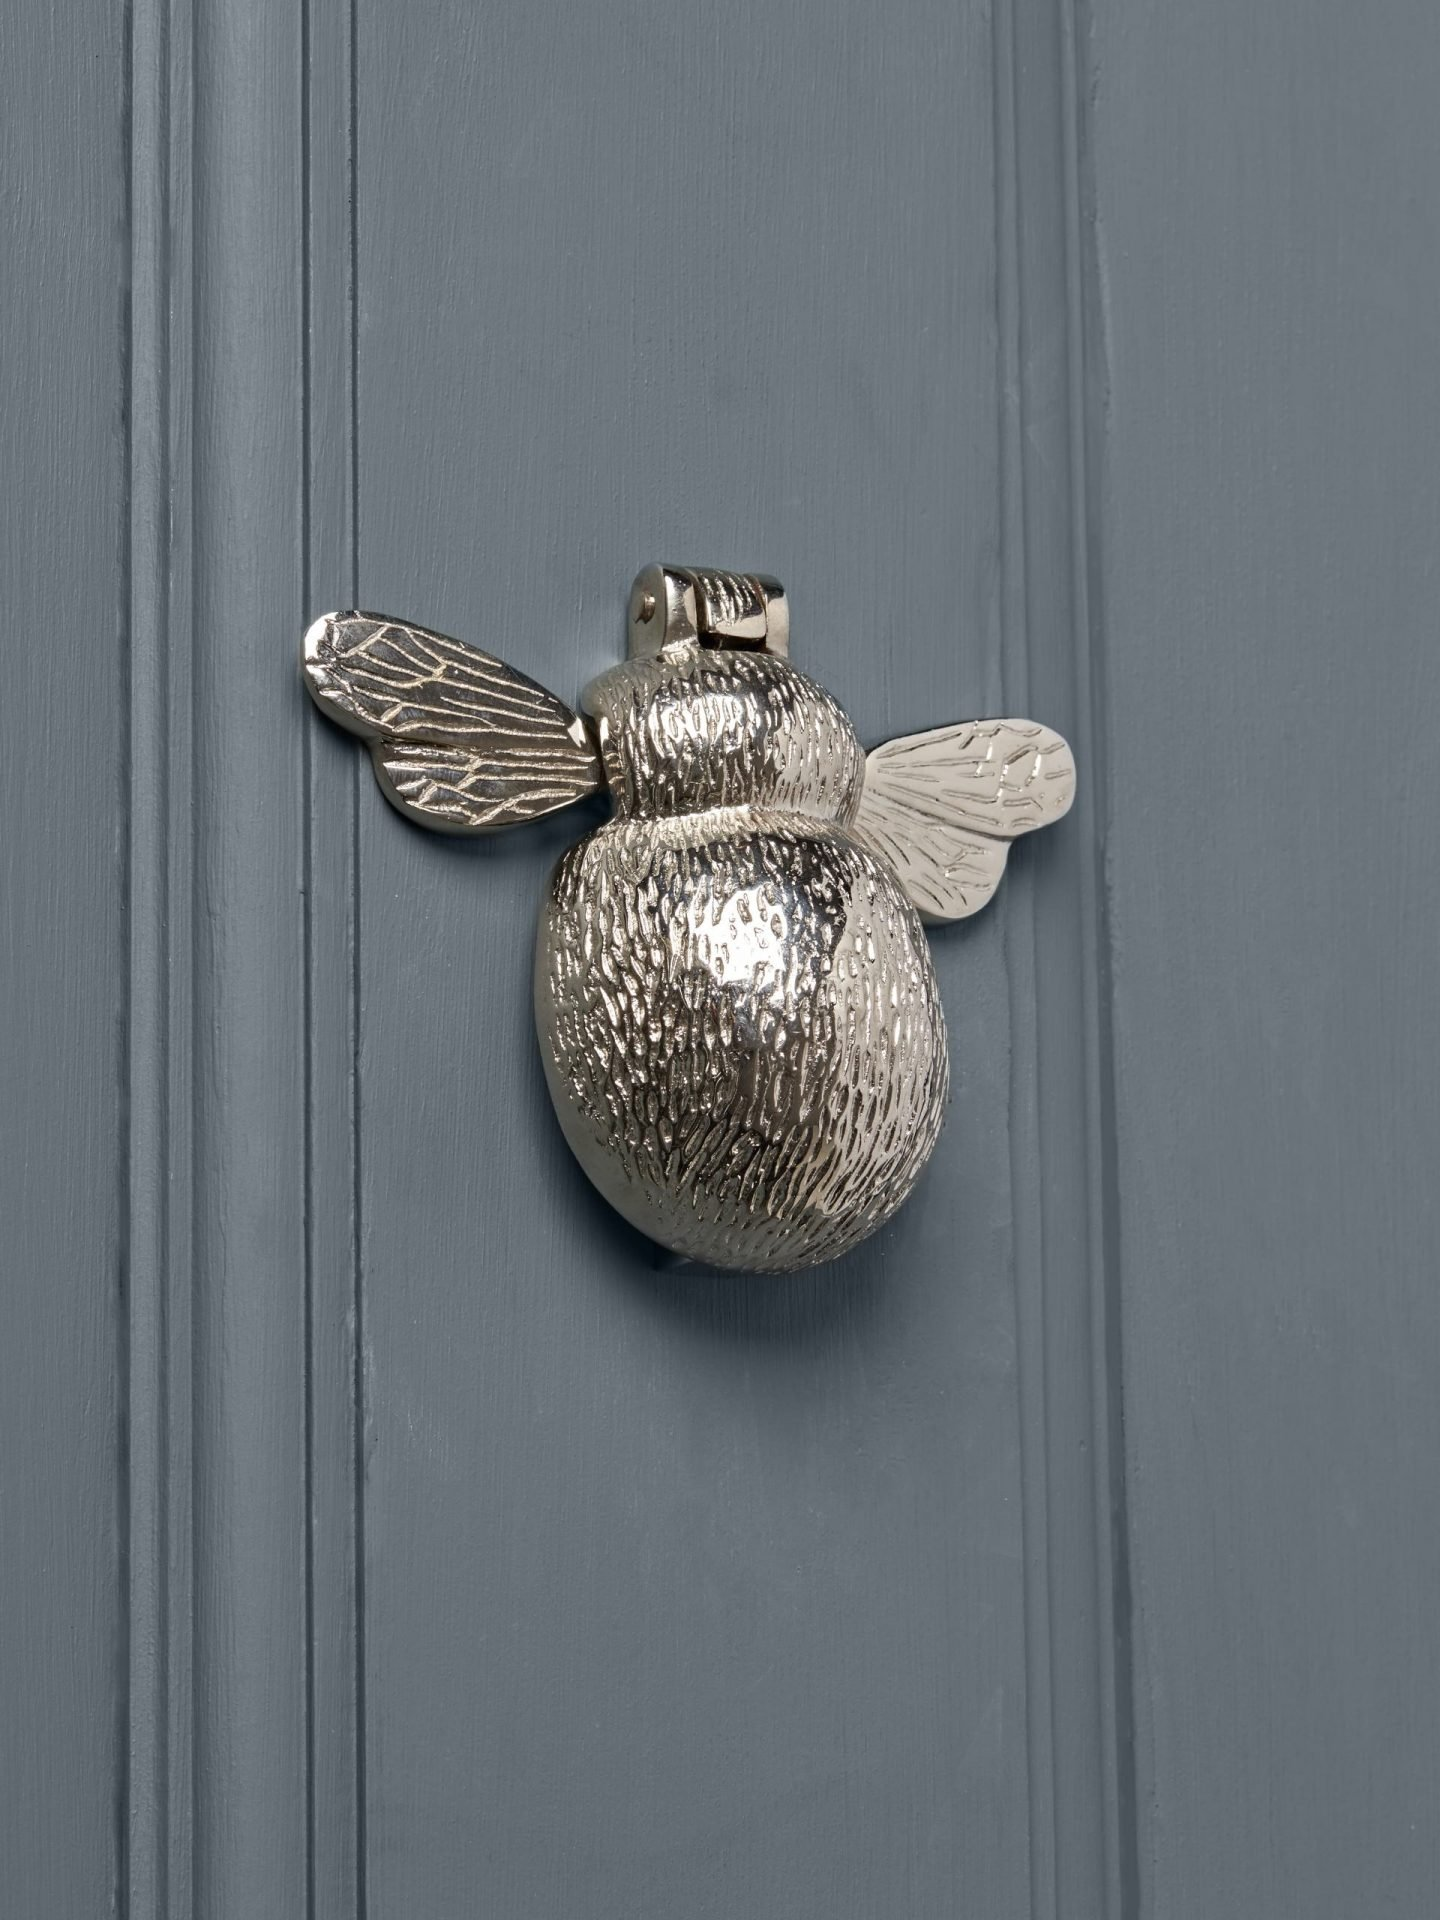 Nickel bee door knocker by Cox and Cox.